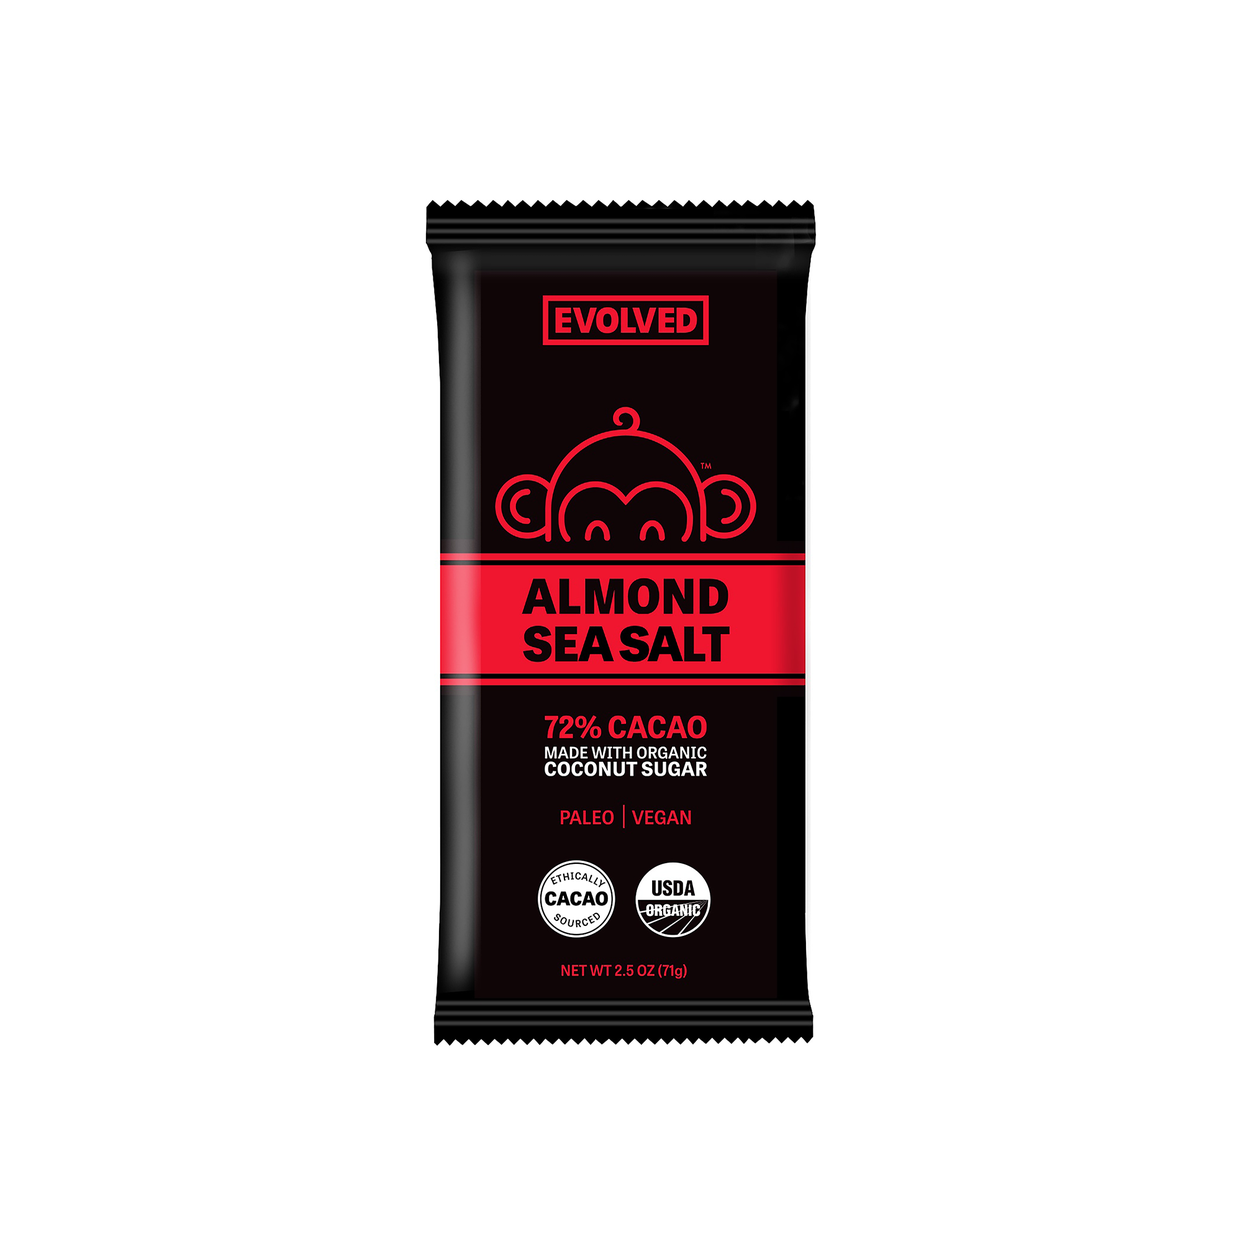 eating evolved almond & sea salt